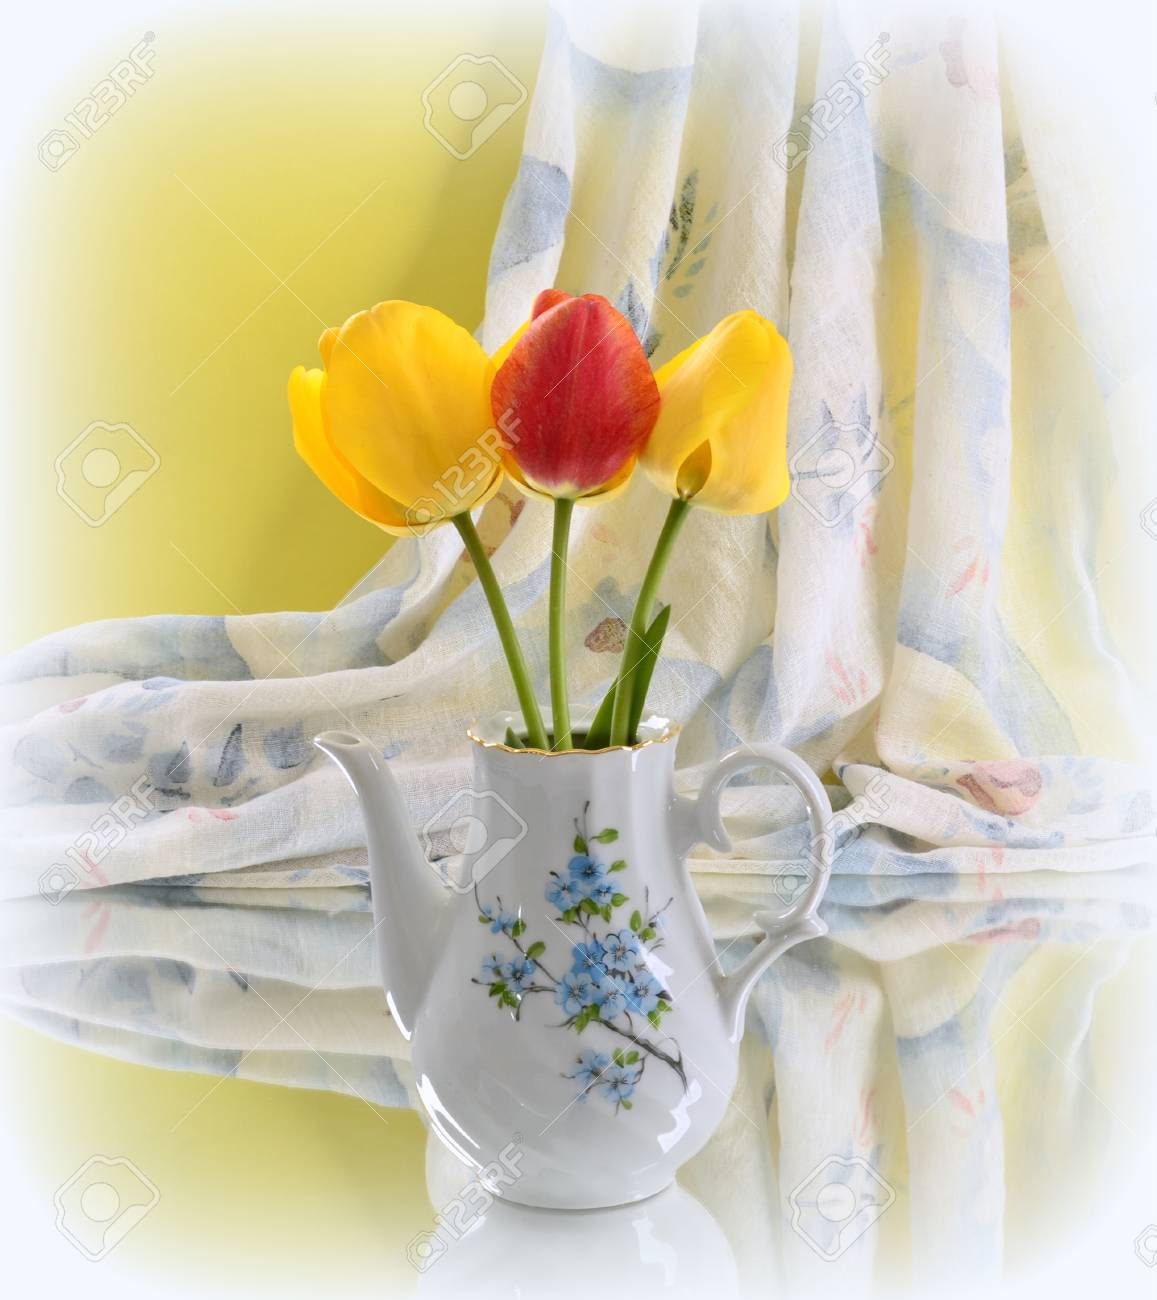 Beautiful Spring Flowers In A Vase Lizenzfreie Fotos Bilder Und